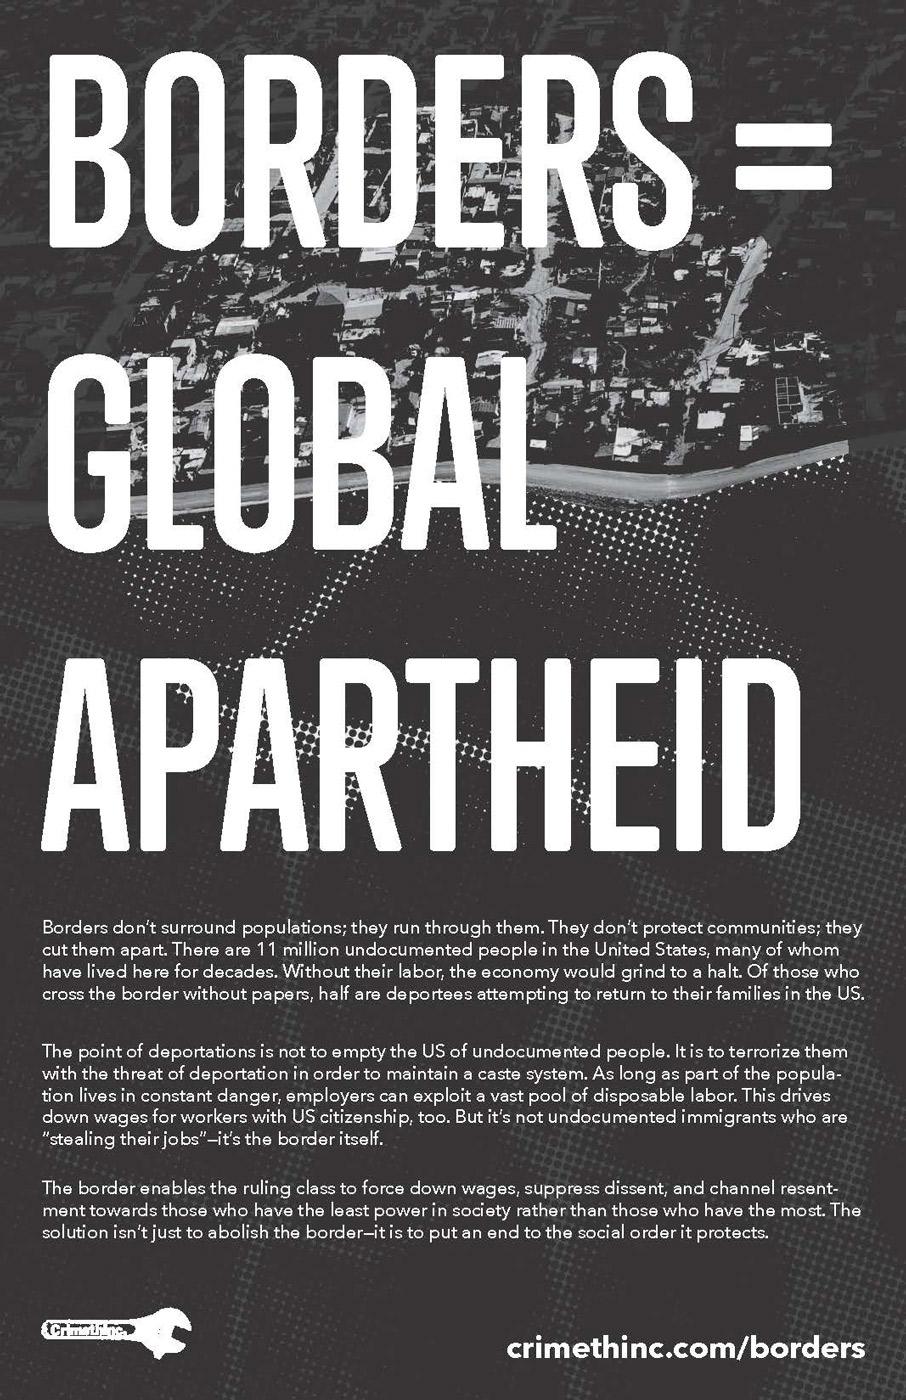 borders-equal-global-apartheid_front_black_and_white